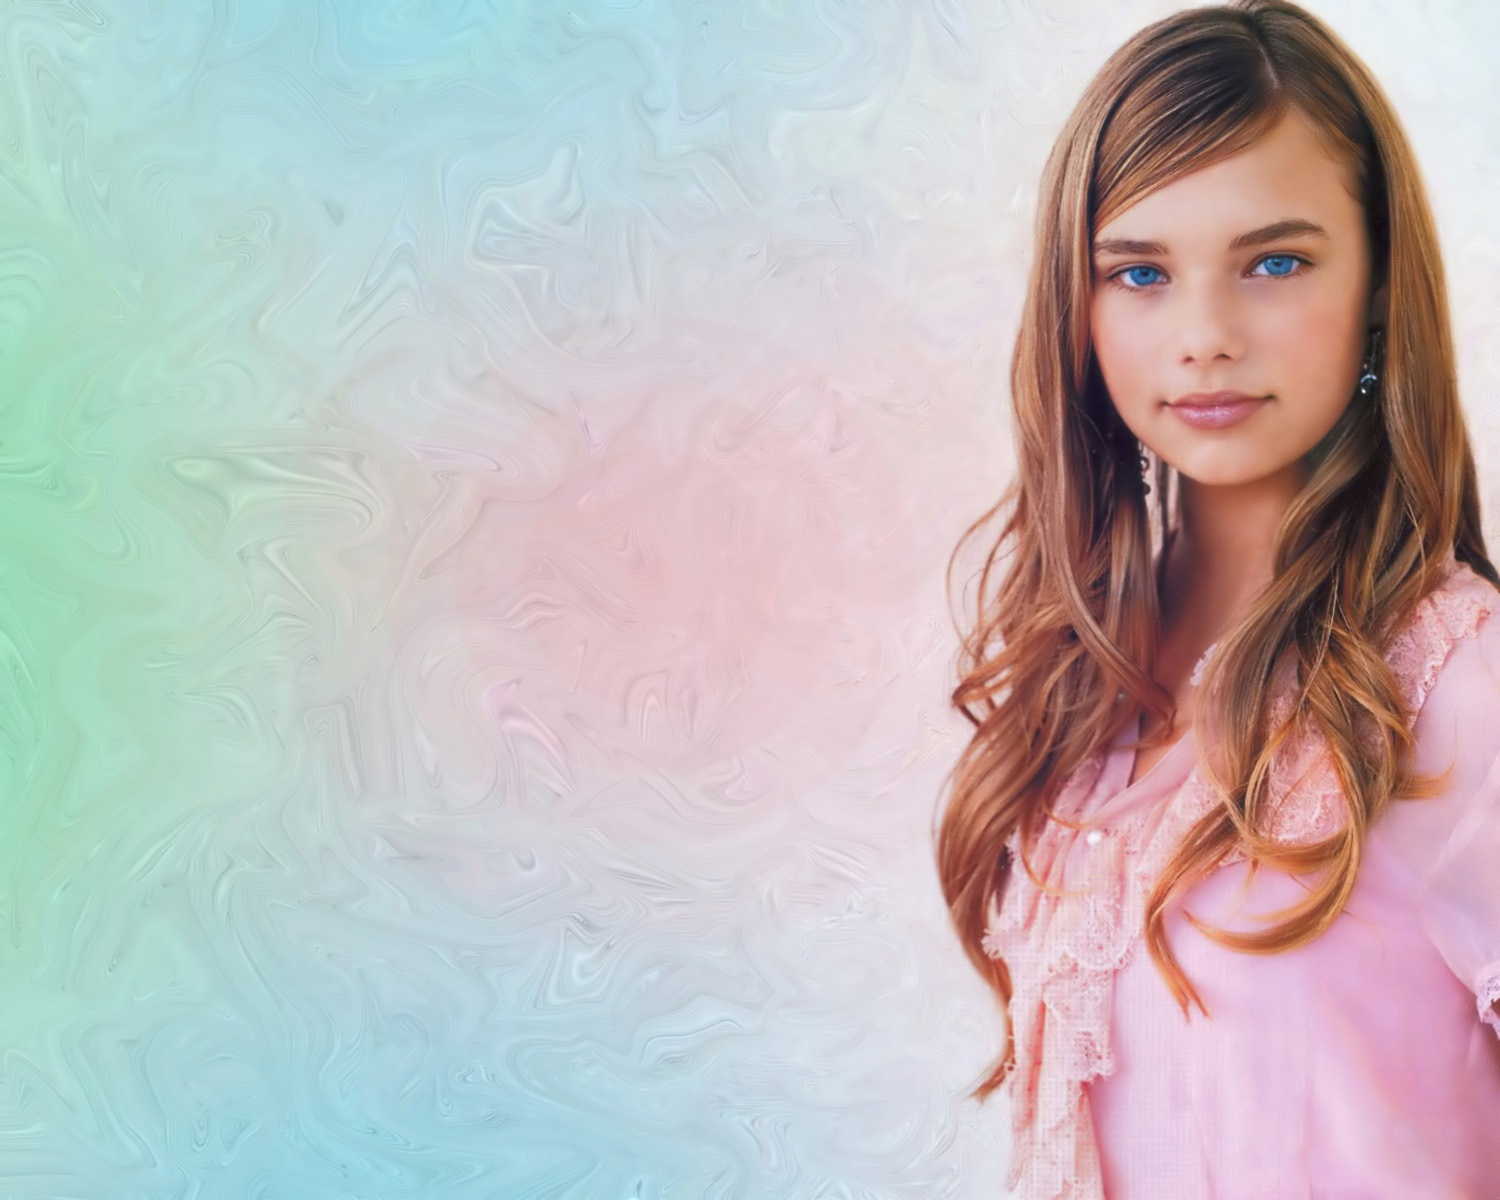 Indiana Evans leaked wallpapers